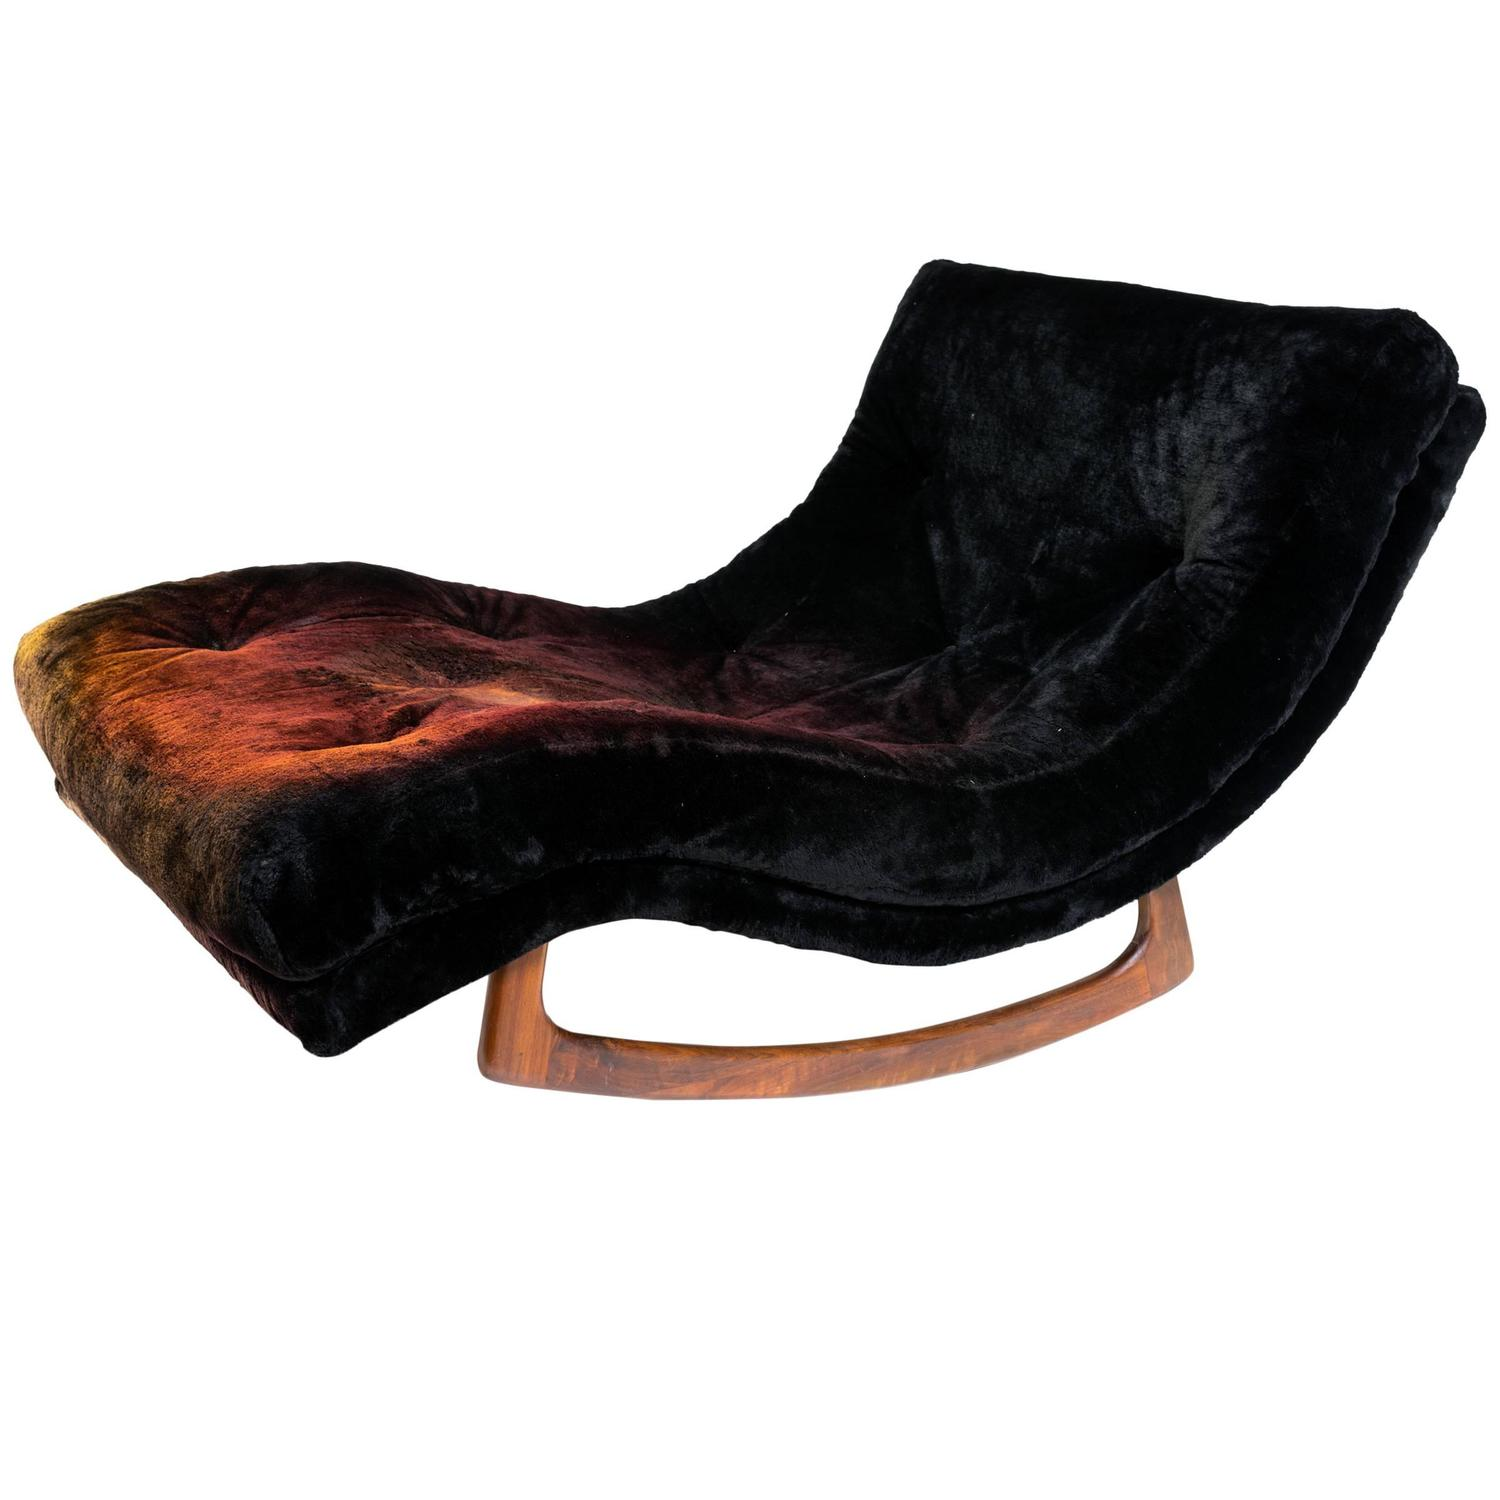 adrian pearsall wave chaise rocker for craft at 1stdibs. Black Bedroom Furniture Sets. Home Design Ideas